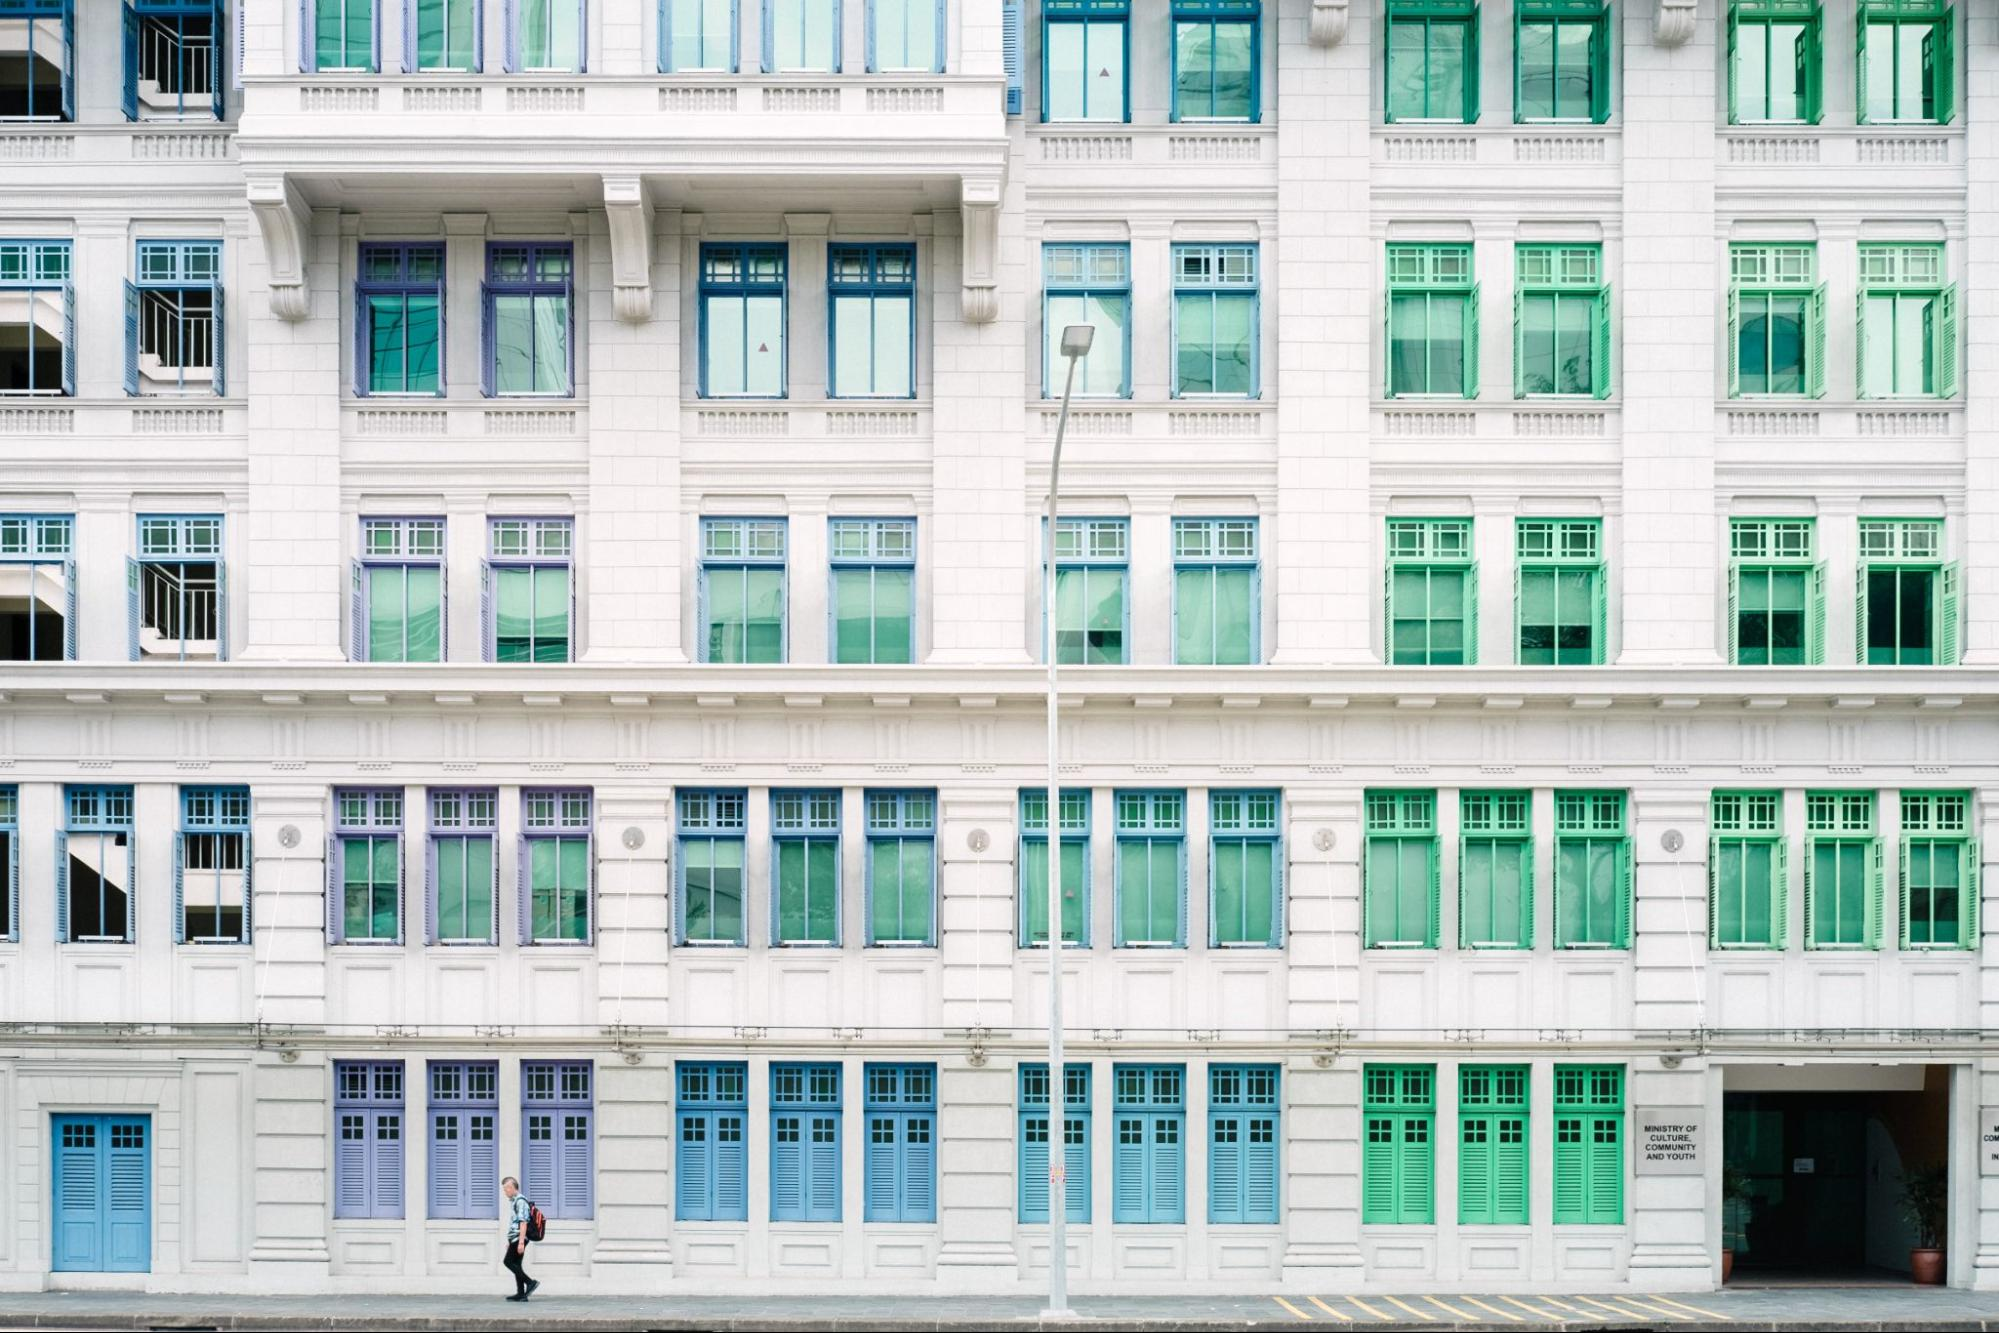 The Many Windows of Old Hill Street Police Station